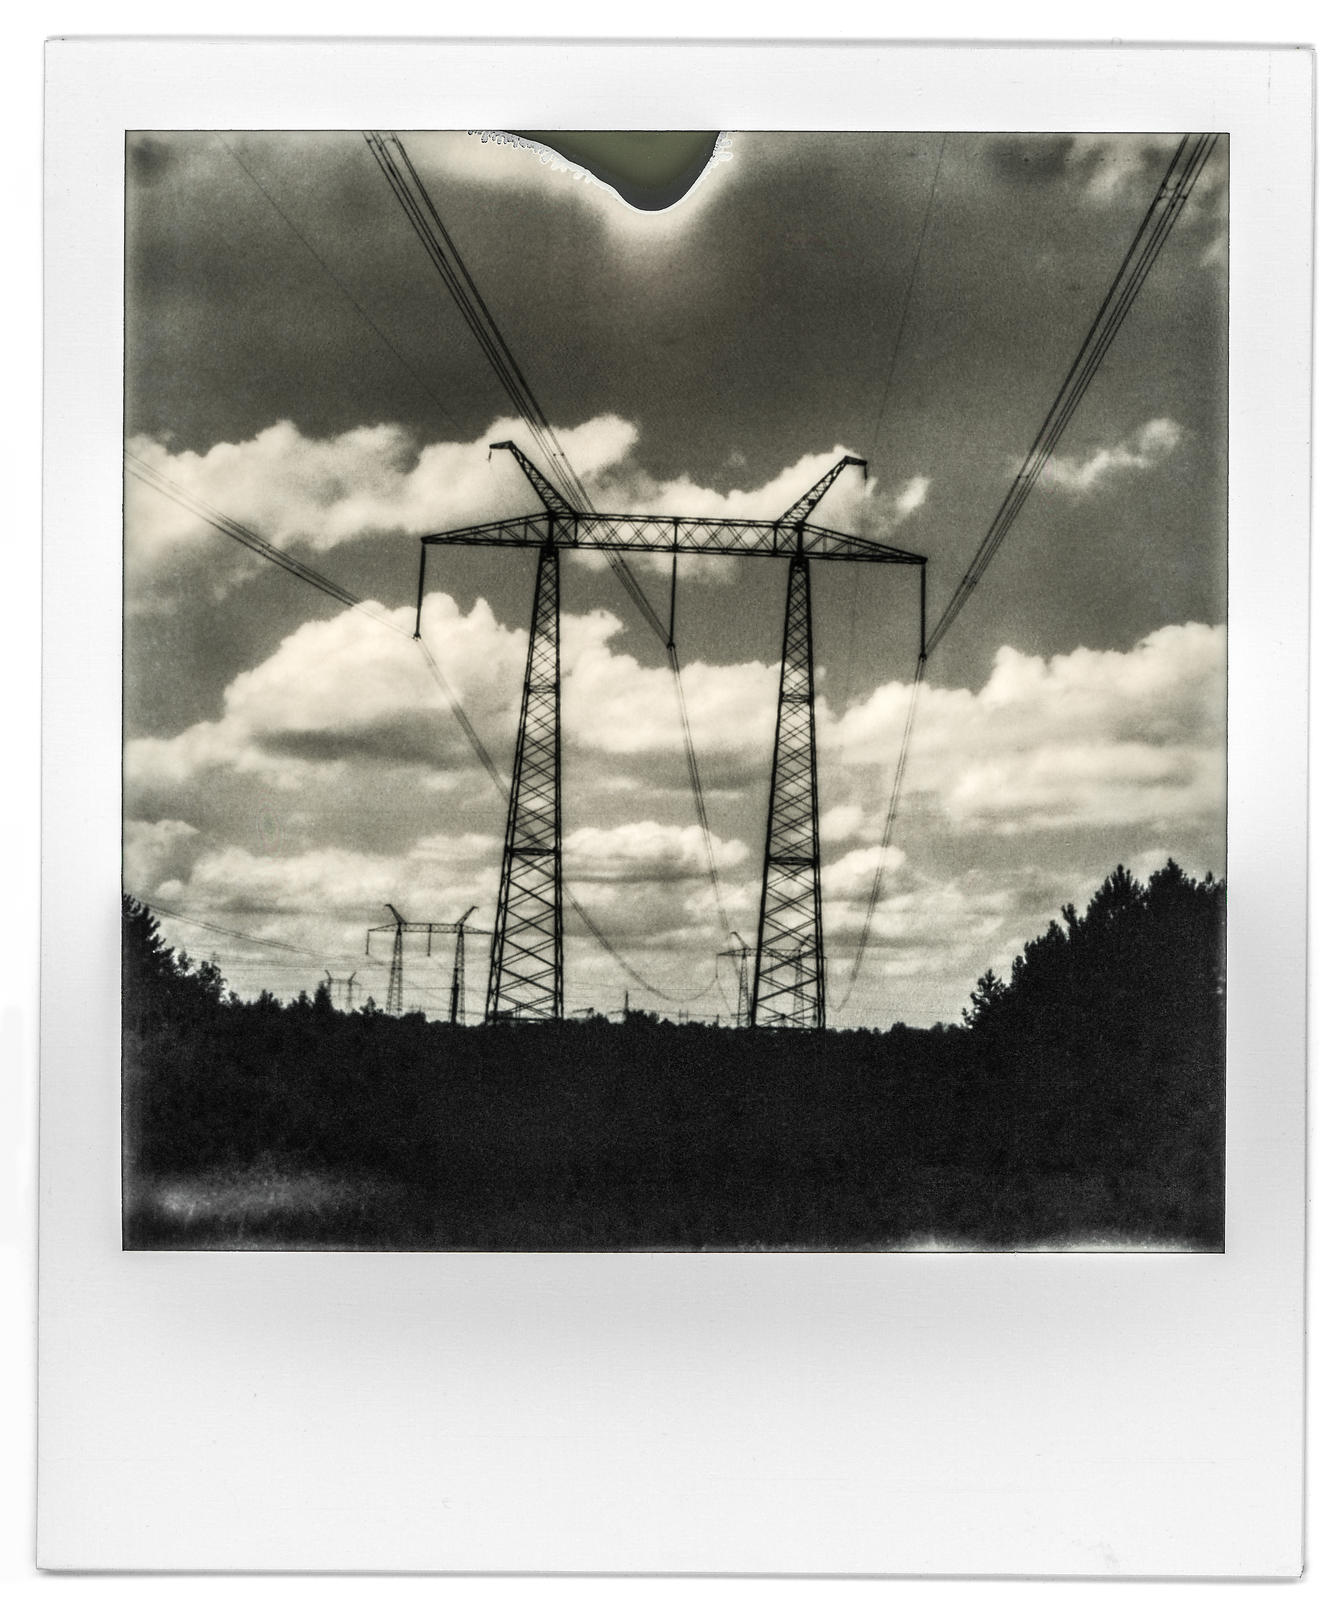 photo-polaroid-tchernobyl-chernobyl-25